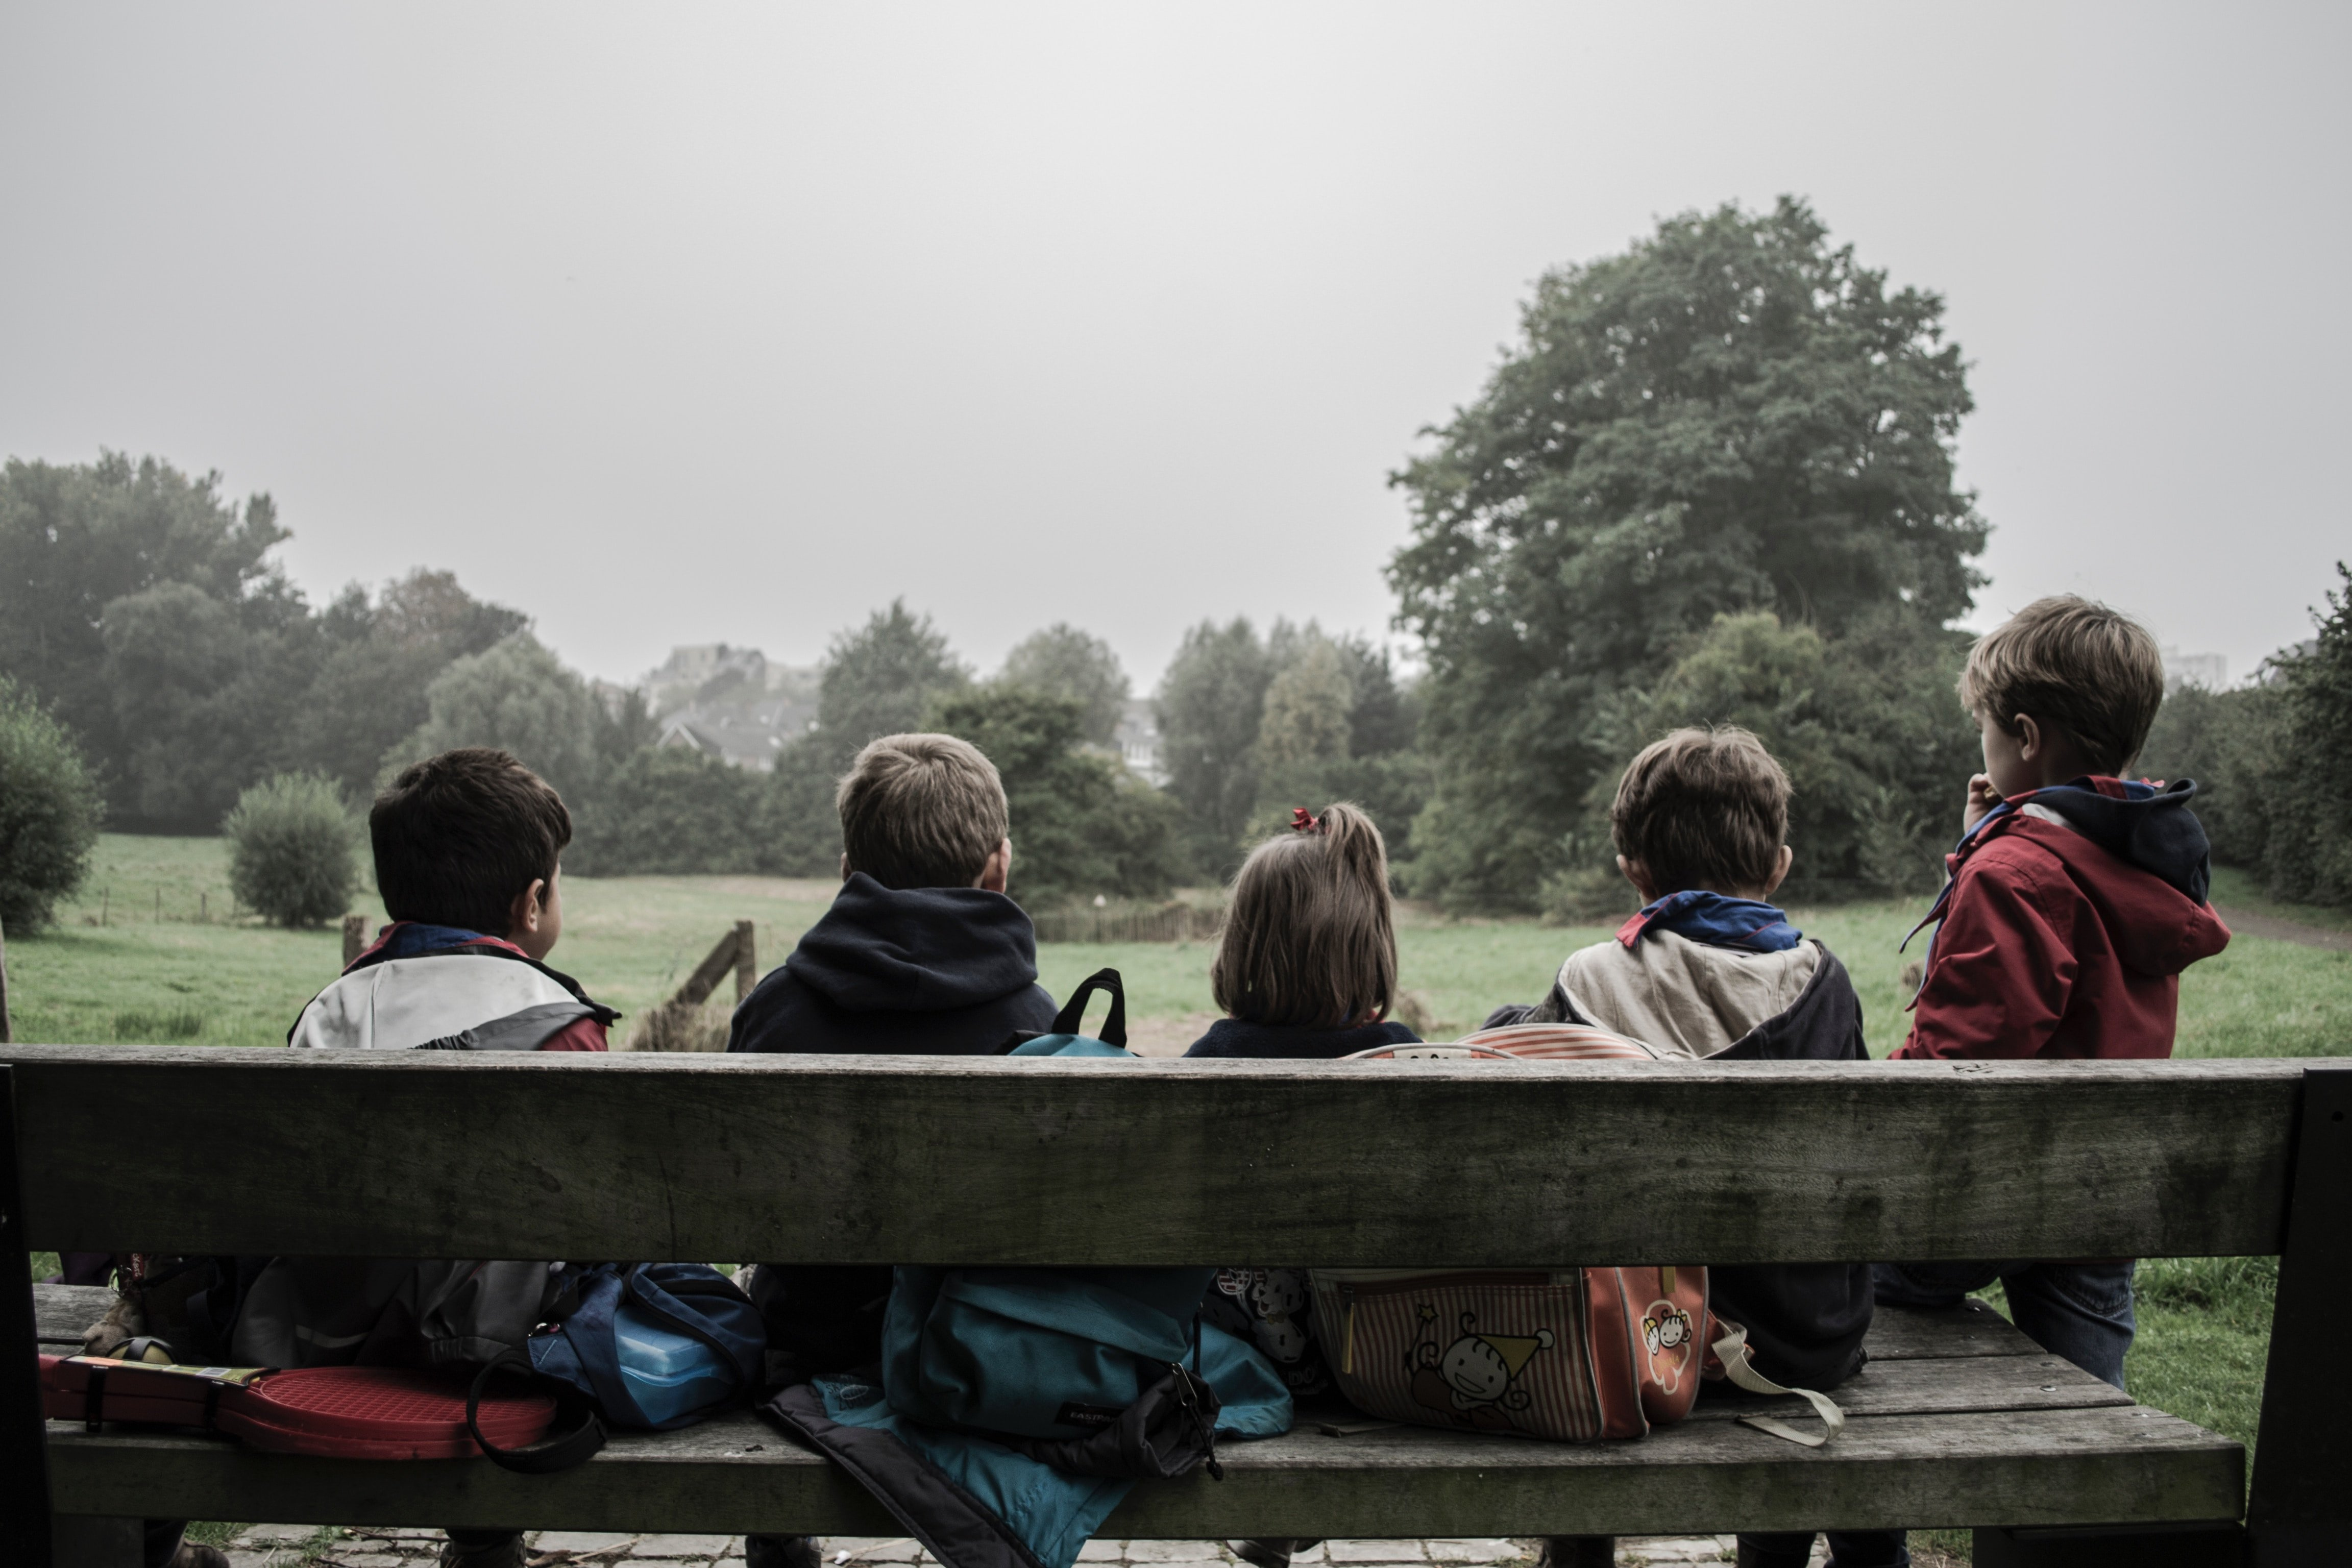 A group of children  | Source: Unsplash.com